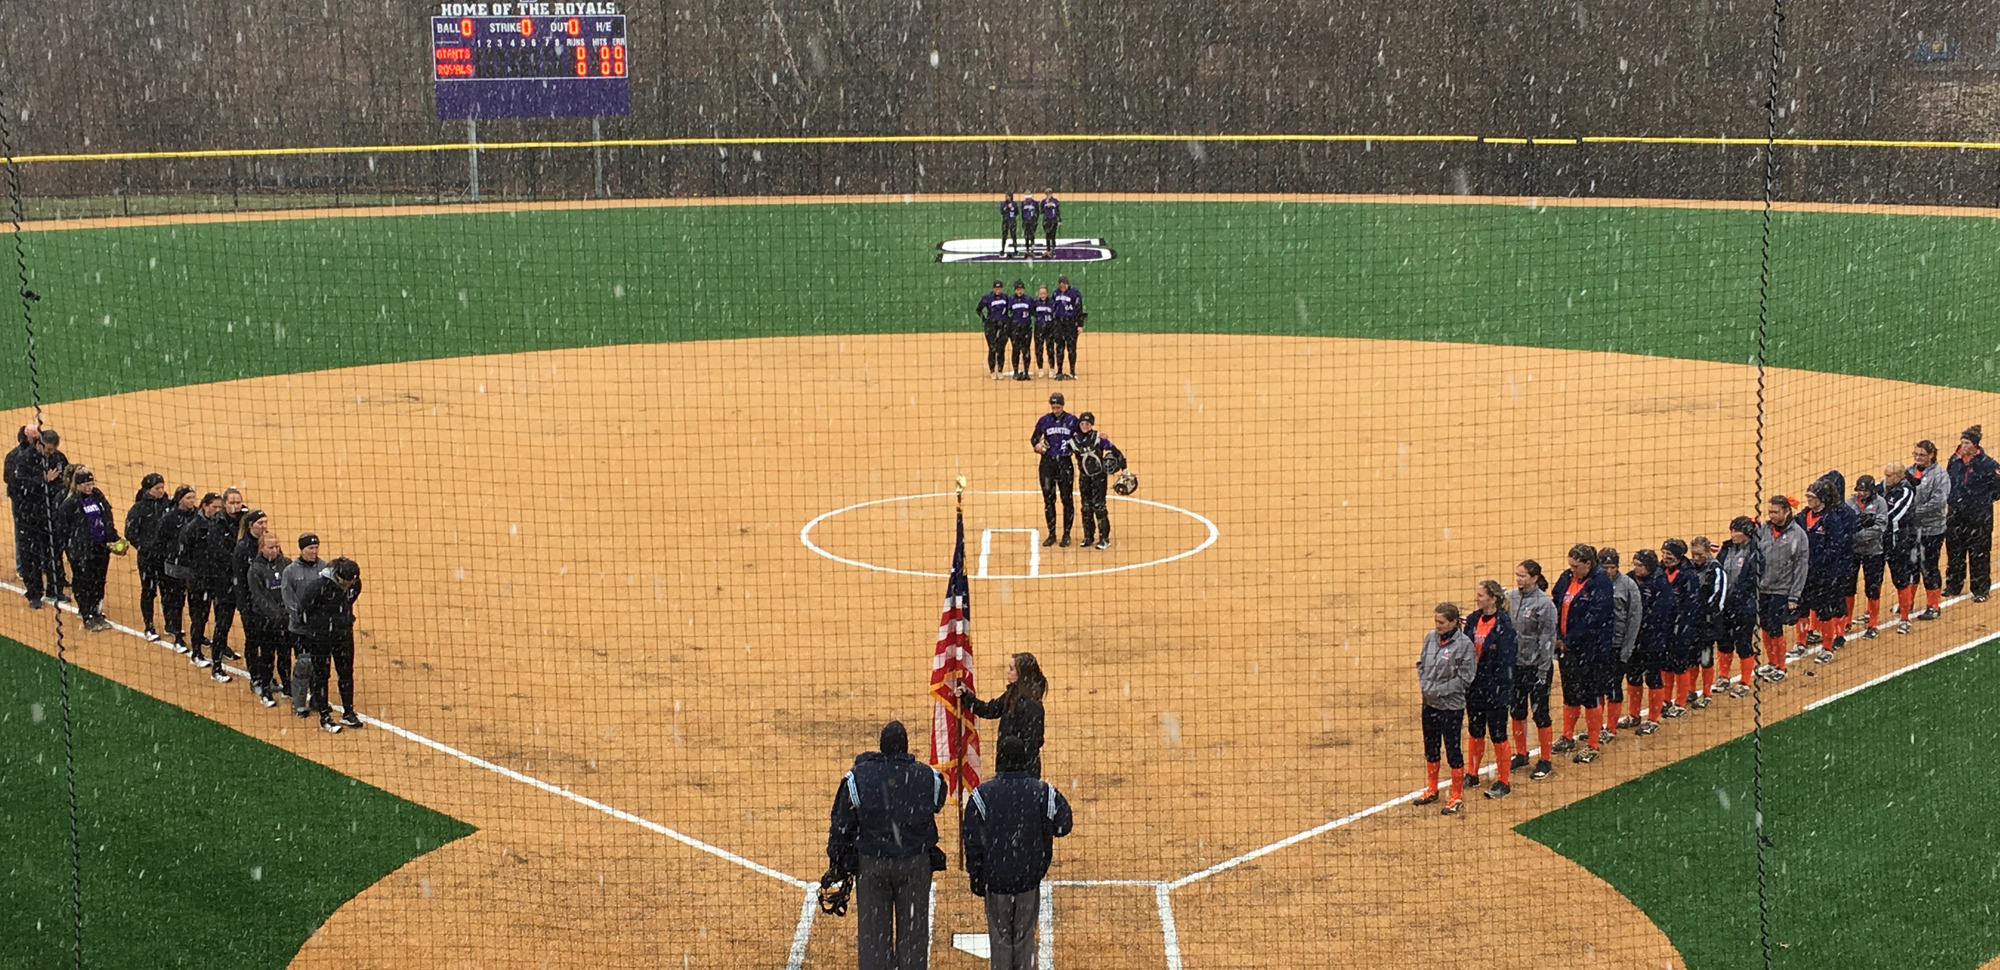 Scranton battled through snow squalls on Tuesday night to sweep a non-conference doubleheader from Keystone at Magis Field.